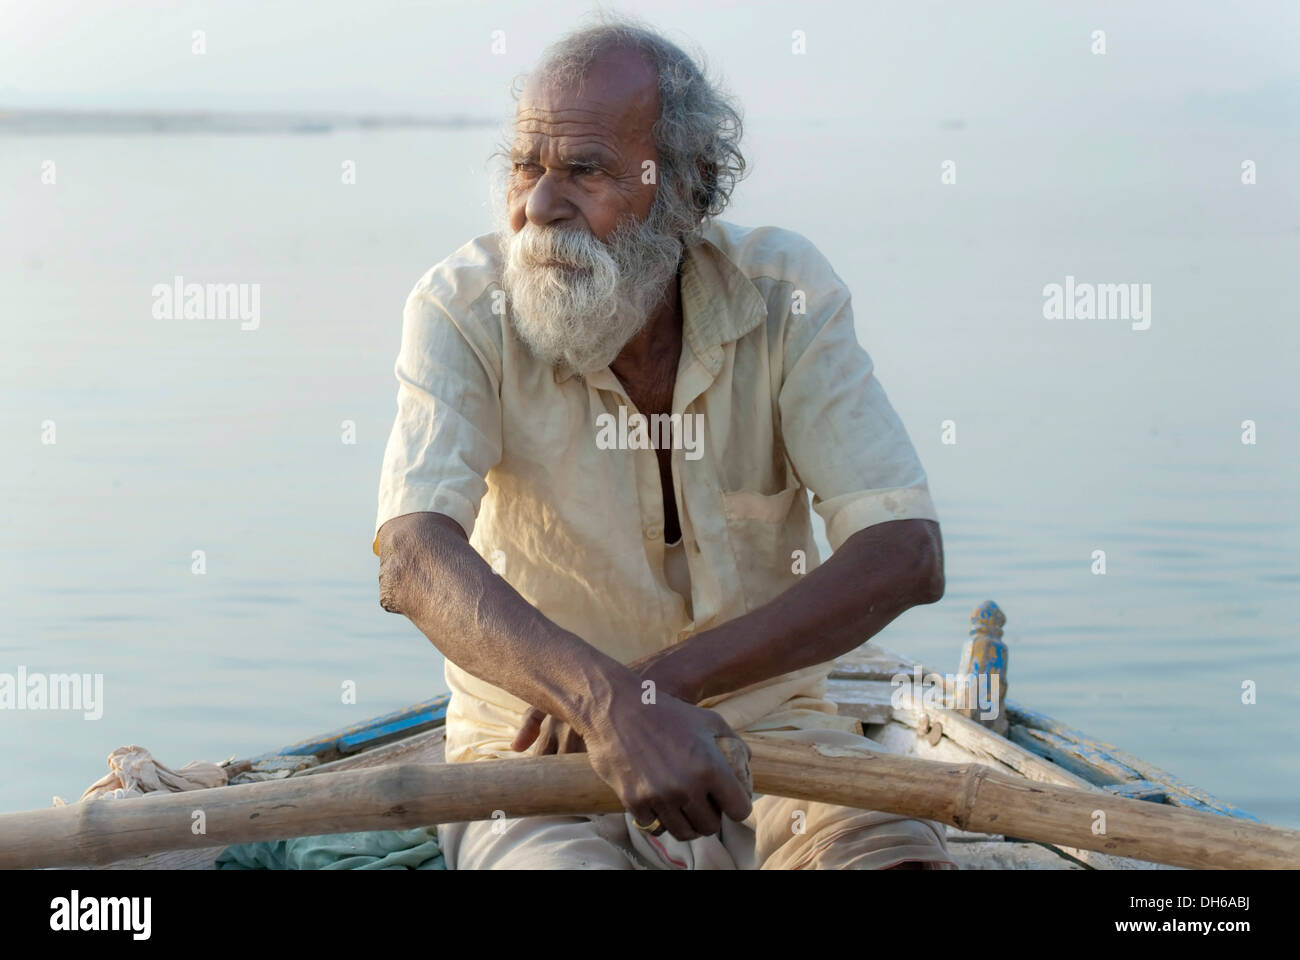 Old man rowing a boat on the Ganges river, Sunrise, Varanasi, India, Asia - Stock Image